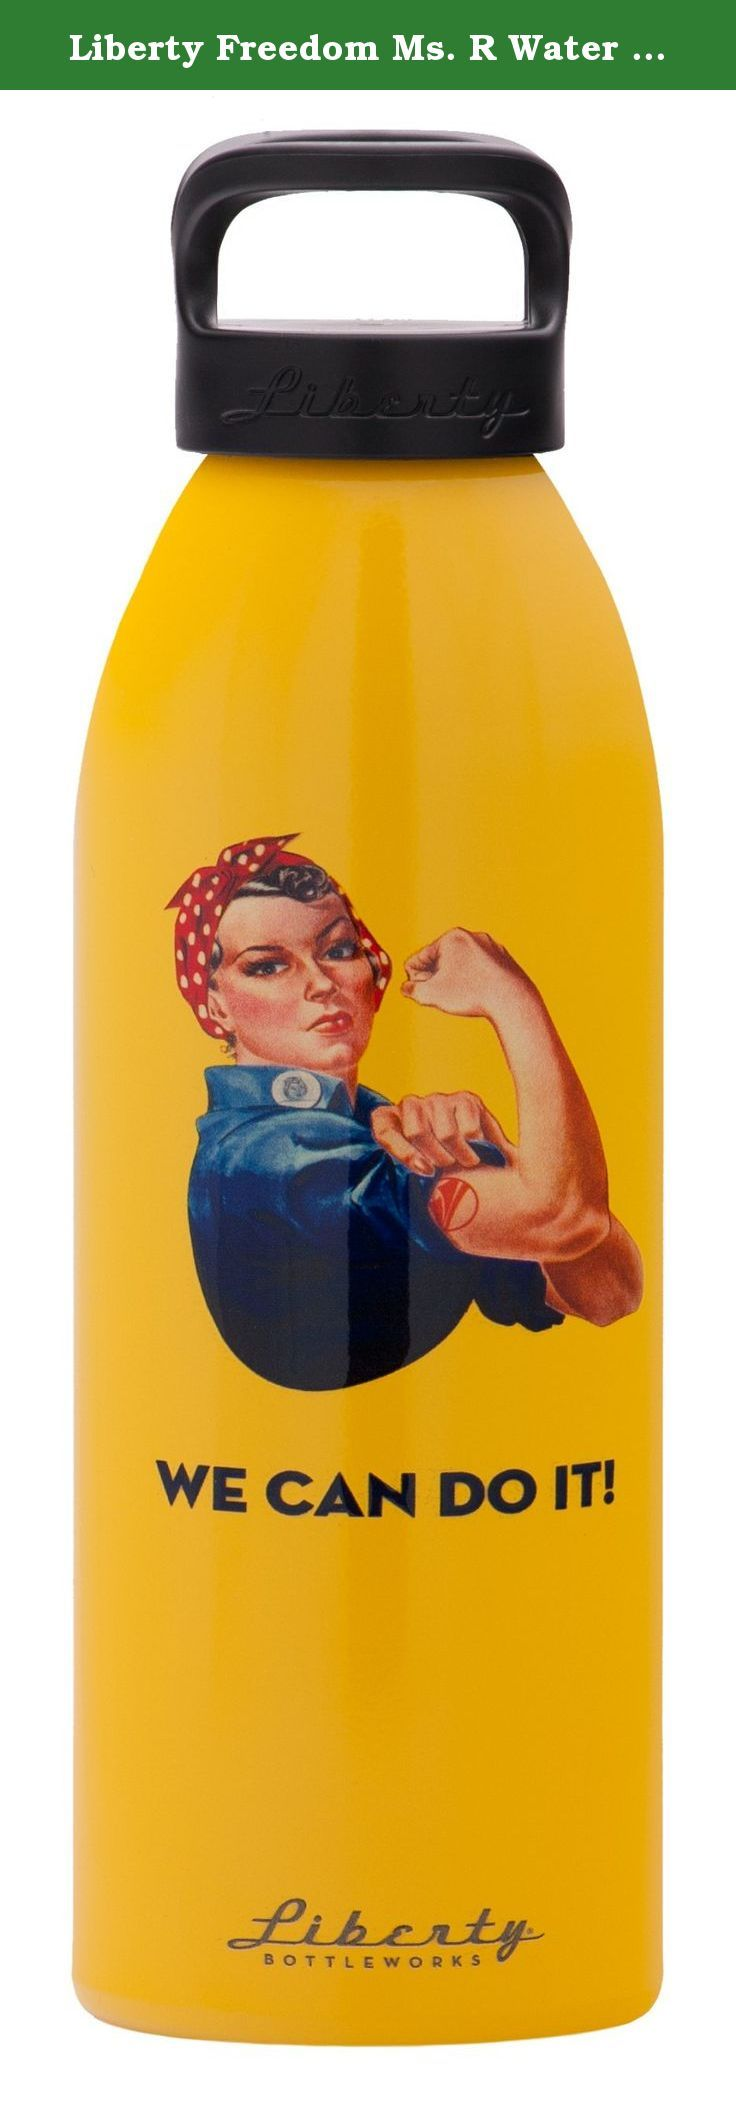 Liberty Freedom Ms. R Water Bottle (Saffron, 24-Ounce). Liberty bottleworks is the only metal bottle manufacturer on the market that makes everything in America. Liberty offers fully customizable cylindrical printing onto a variety of solid color finishes, including: gloss, luster and metallic. There's something here for everyone. We produce our bottles in a renewable manner; the metal is formed in our zero-waste factory with super strong and partially recycled 3003 aluminum coils. The...